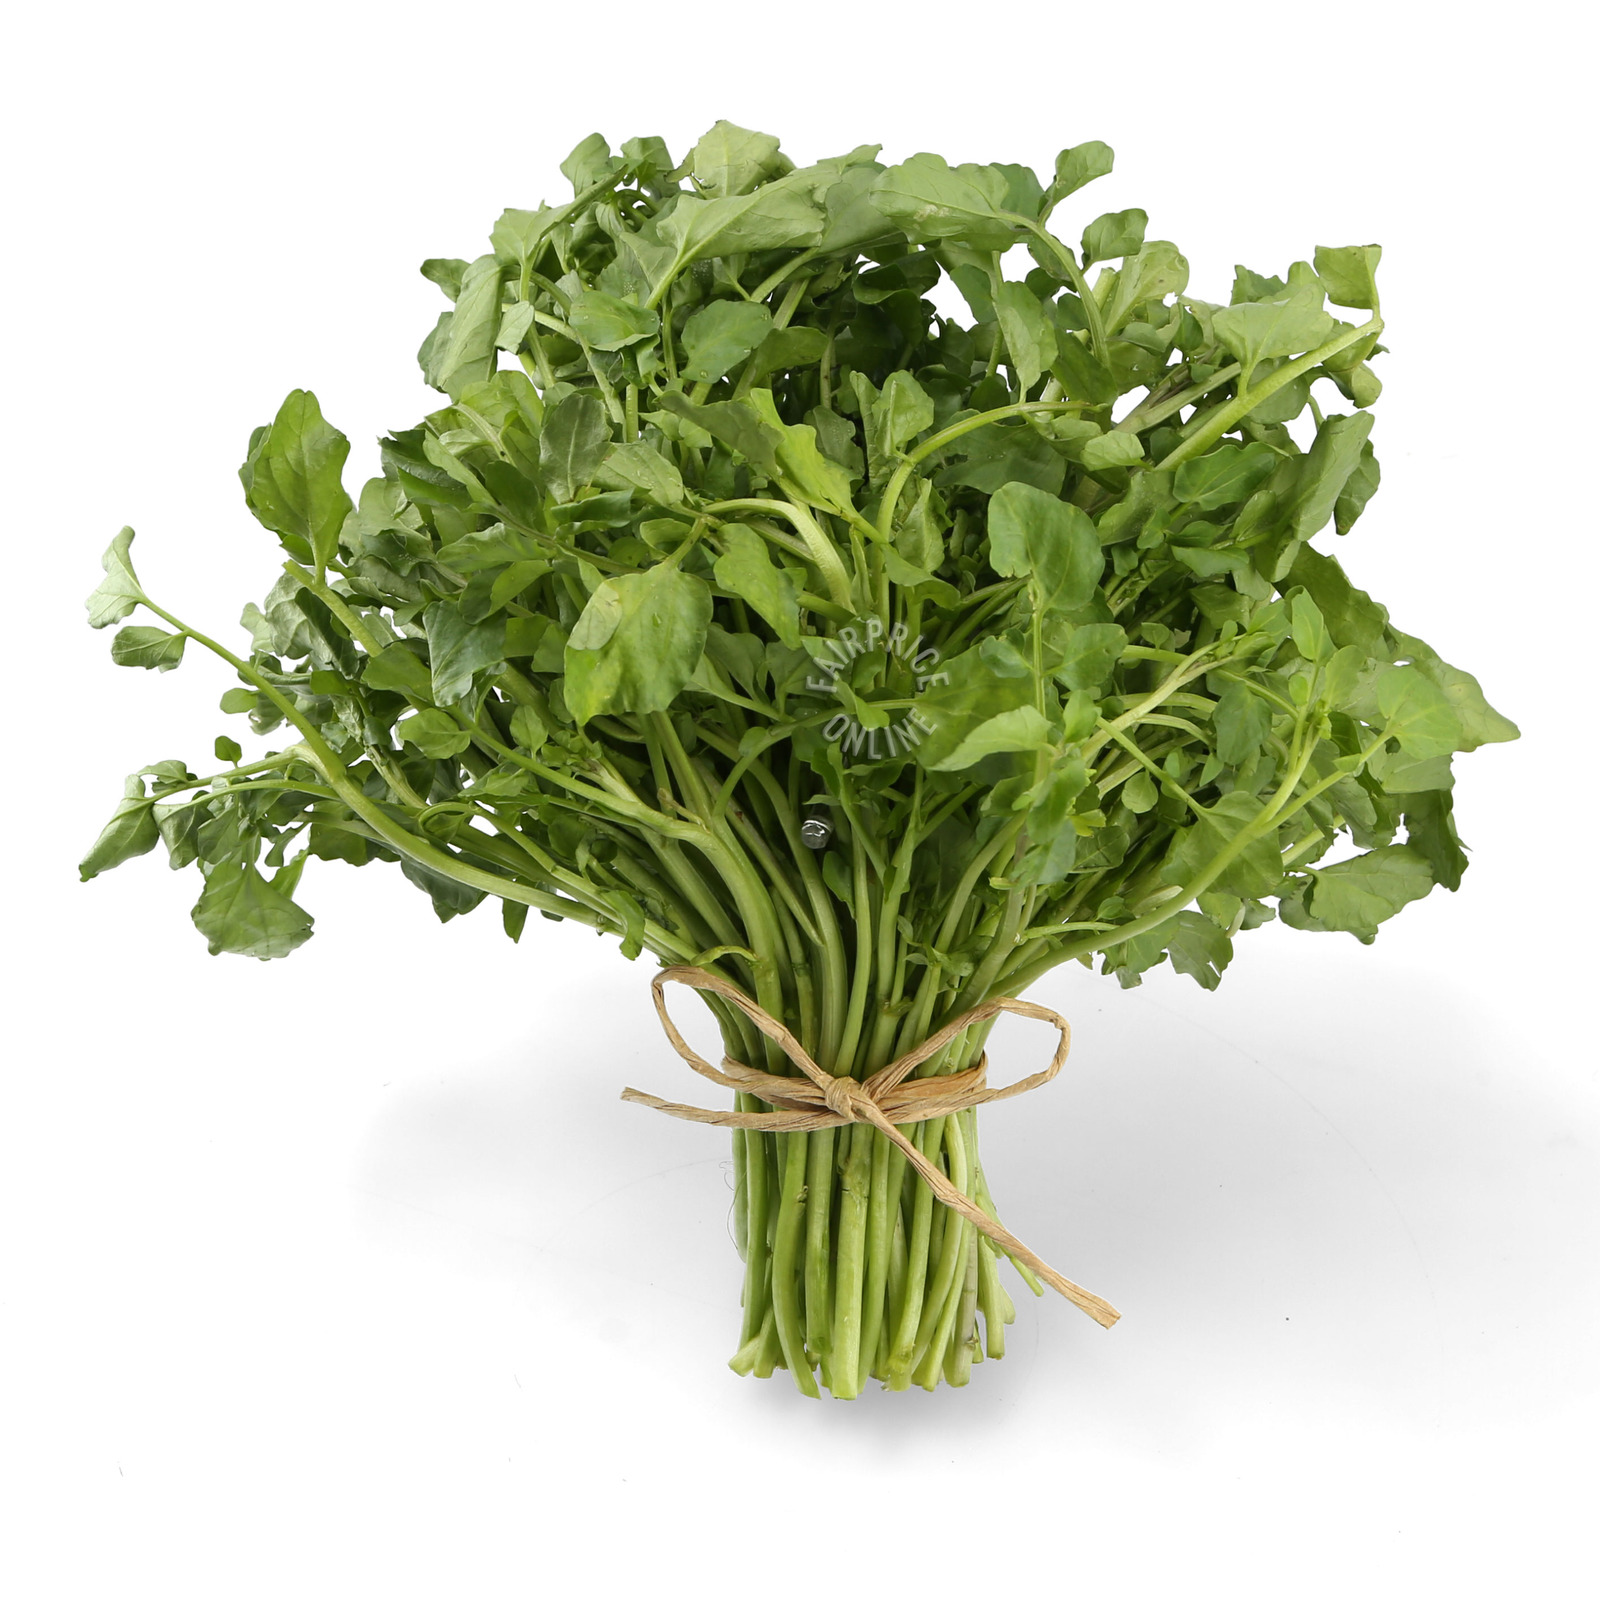 Pasar Indonesia Water Cress